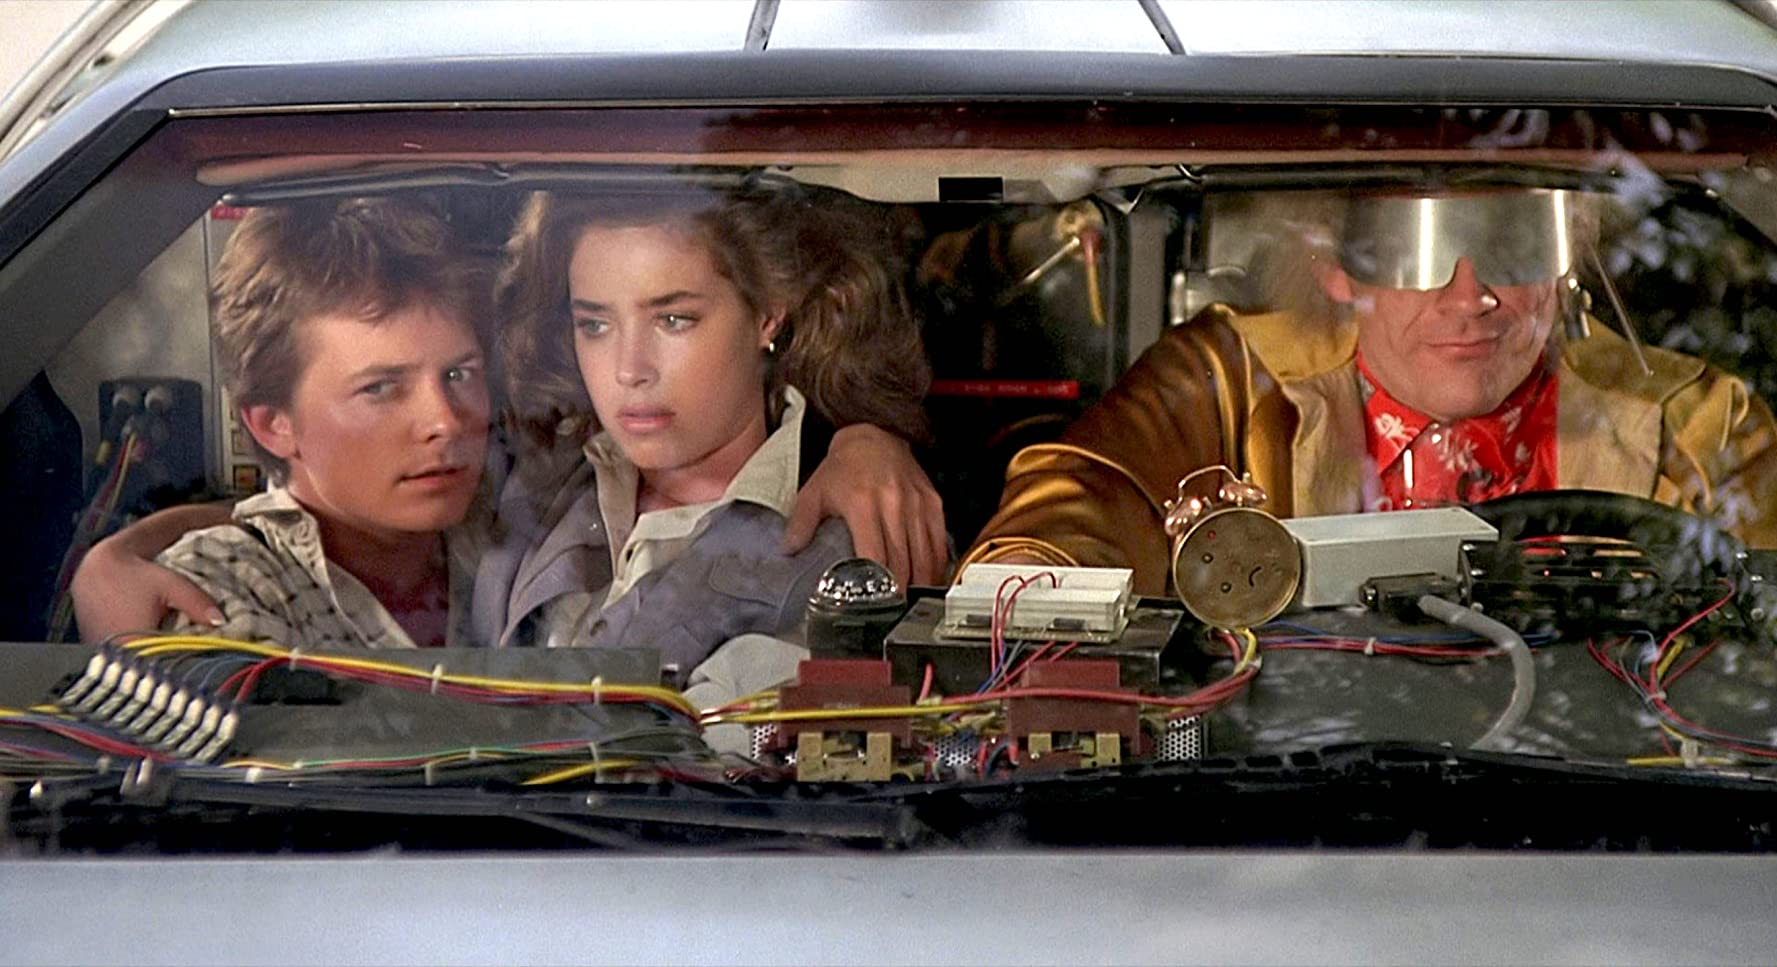 Michael J. Fox, Christopher Lloyd, and Claudia Wells in Back to the Future (1985)